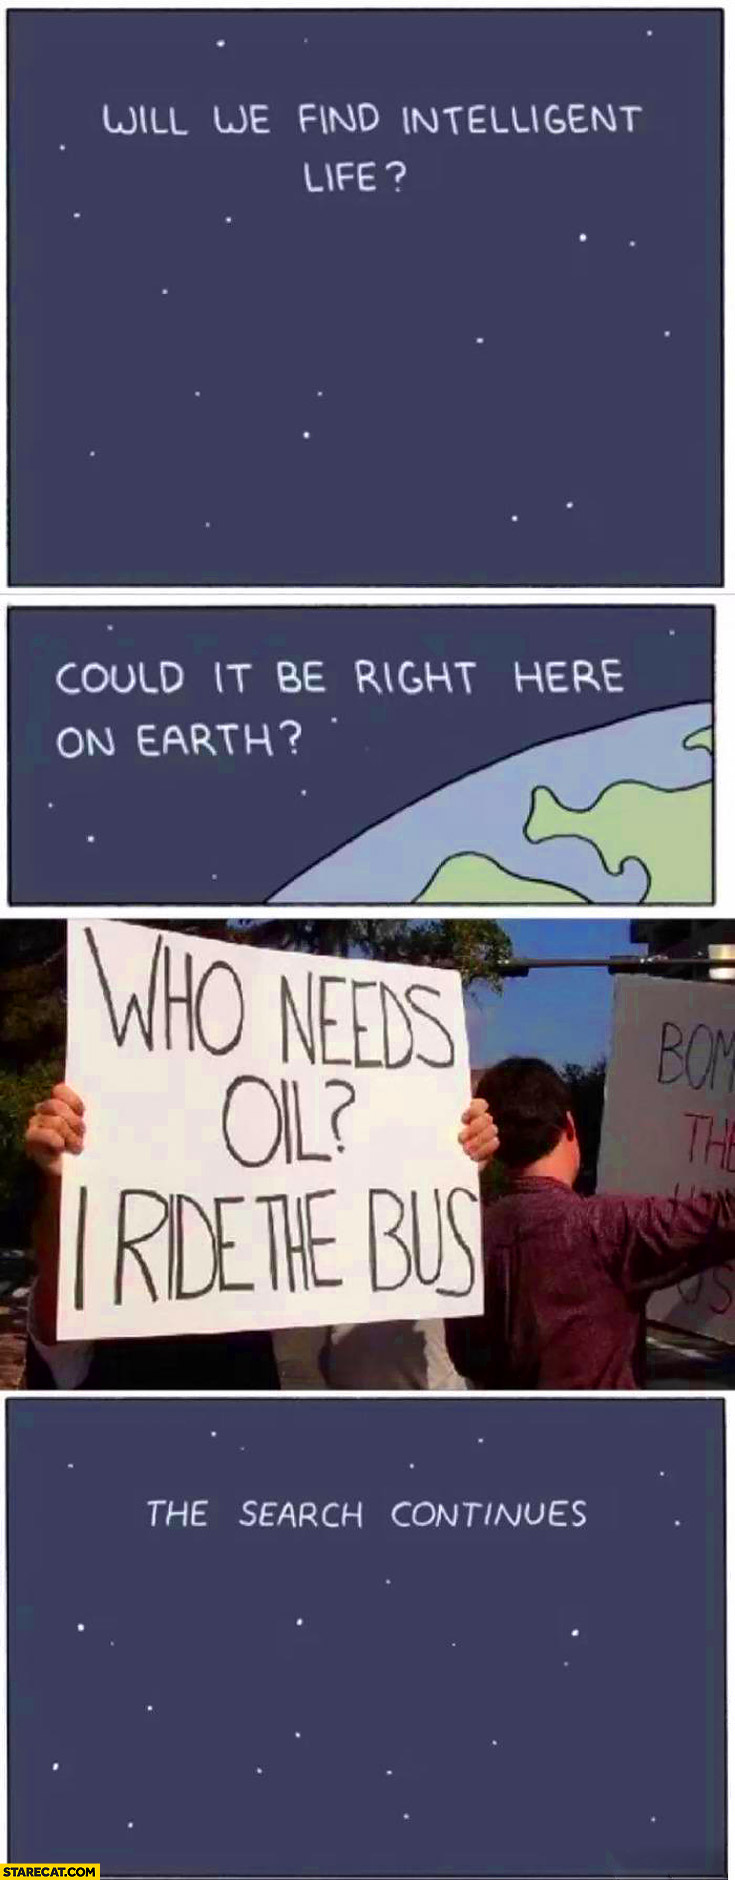 Will we find intelligent life on Earth? Who needs oil I ride the bus. The search continues